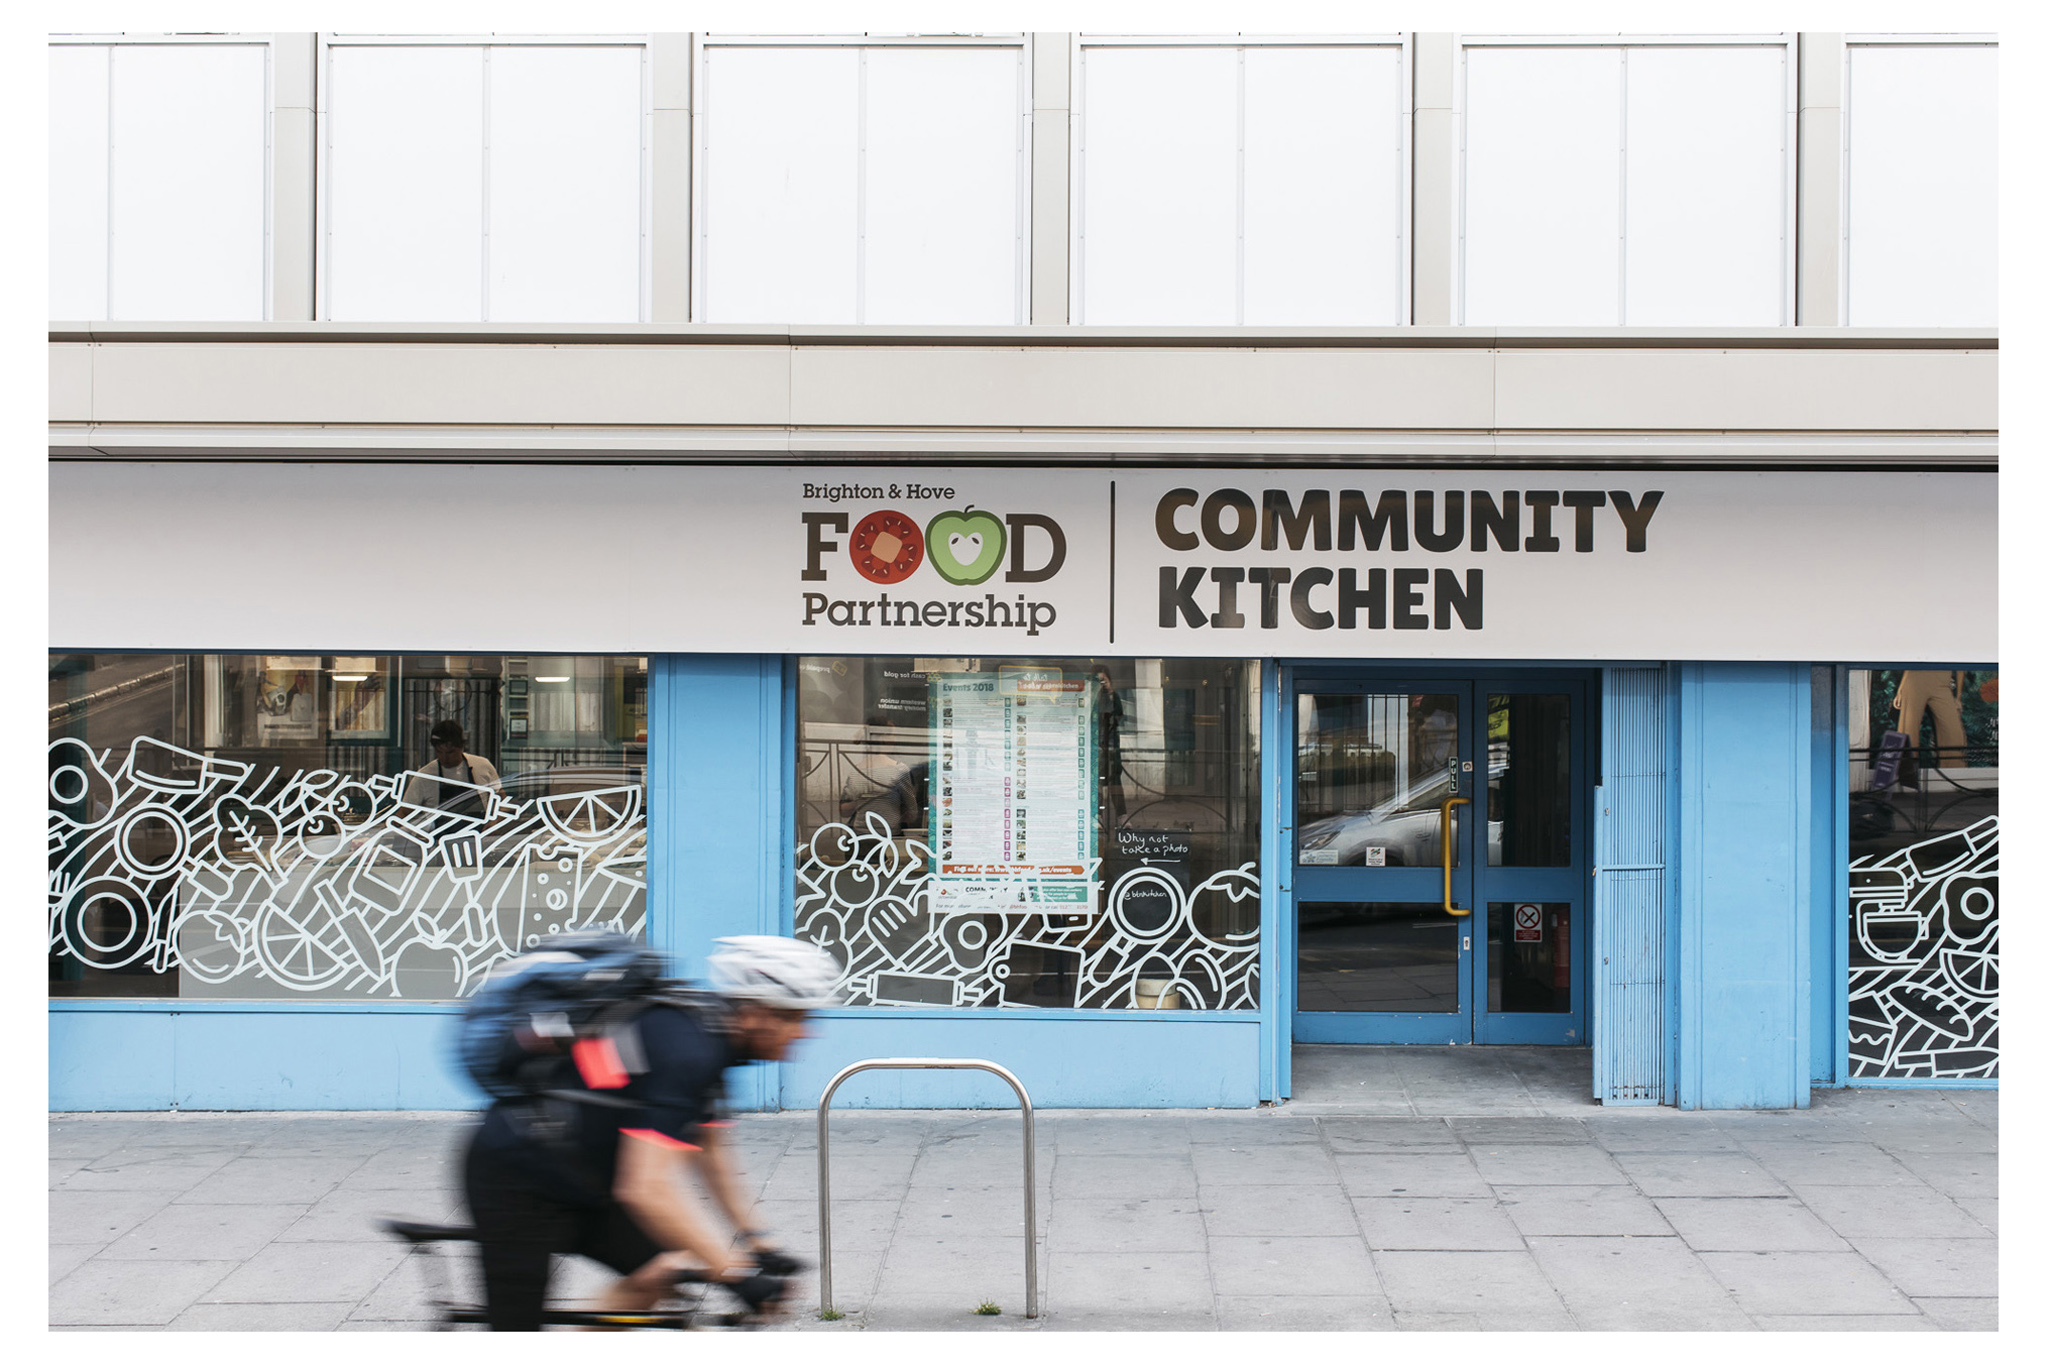 A new community kitchen for Brighton providing education for vulnerable that live in the city funded by classes held there and venue hire.